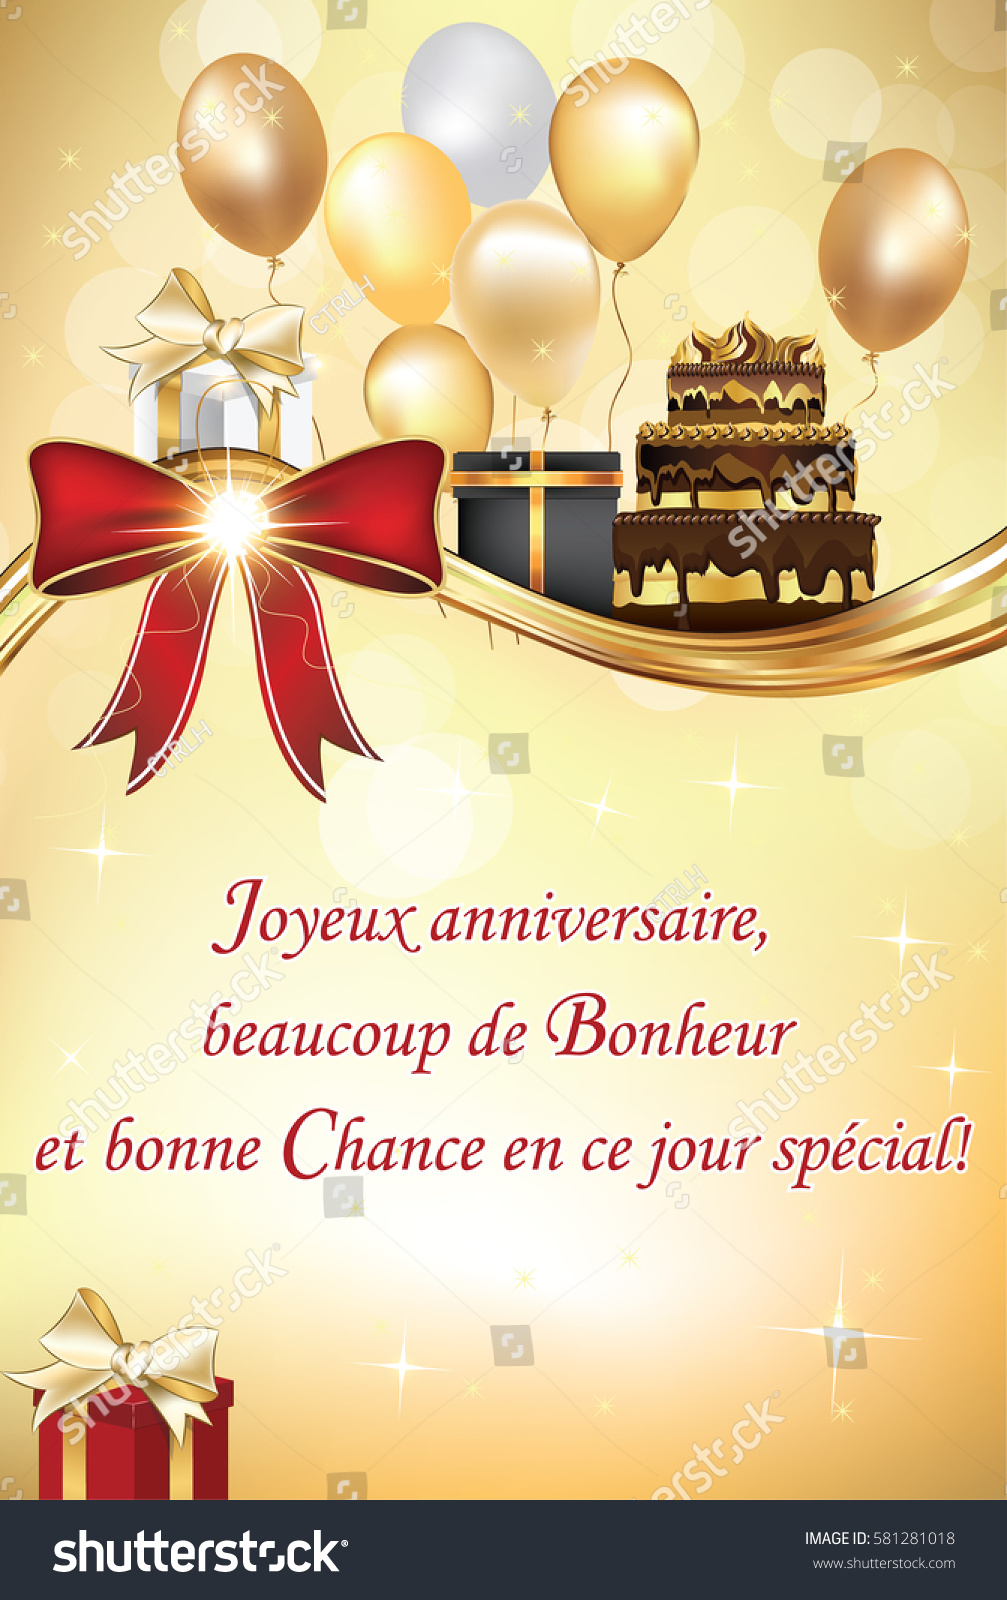 happy birthday wishes in french ; stock-vector-french-birthday-greeting-card-happy-birthday-a-lot-of-happiness-and-good-luck-on-this-special-581281018